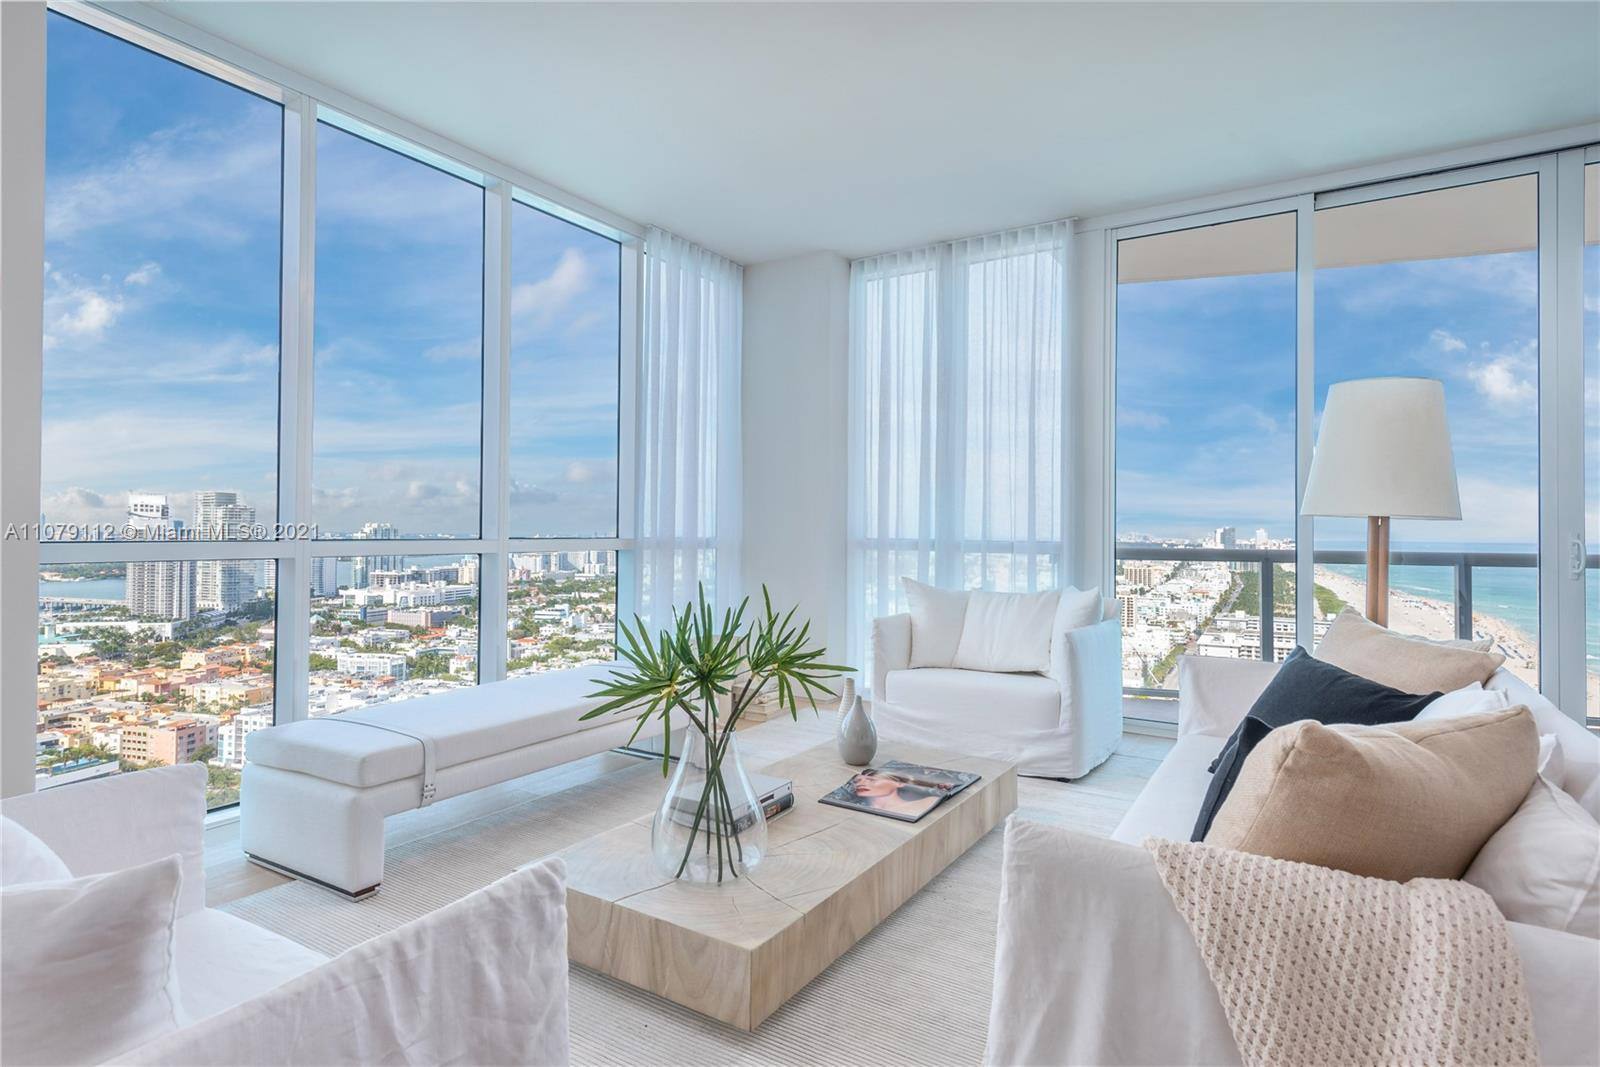 This rarely available high-floor corner unit offers incredible natural light and unobstructed views of the Atlantic Ocean, Biscayne Bay and downtown Miami.  Owners will enjoy a spacious, open-floorpan with extra-large living room, four balconies, private elevator lobby and all of the benefits of a tasteful renovation (completed in 2017).  Call listing agent today!  This condo won't last.